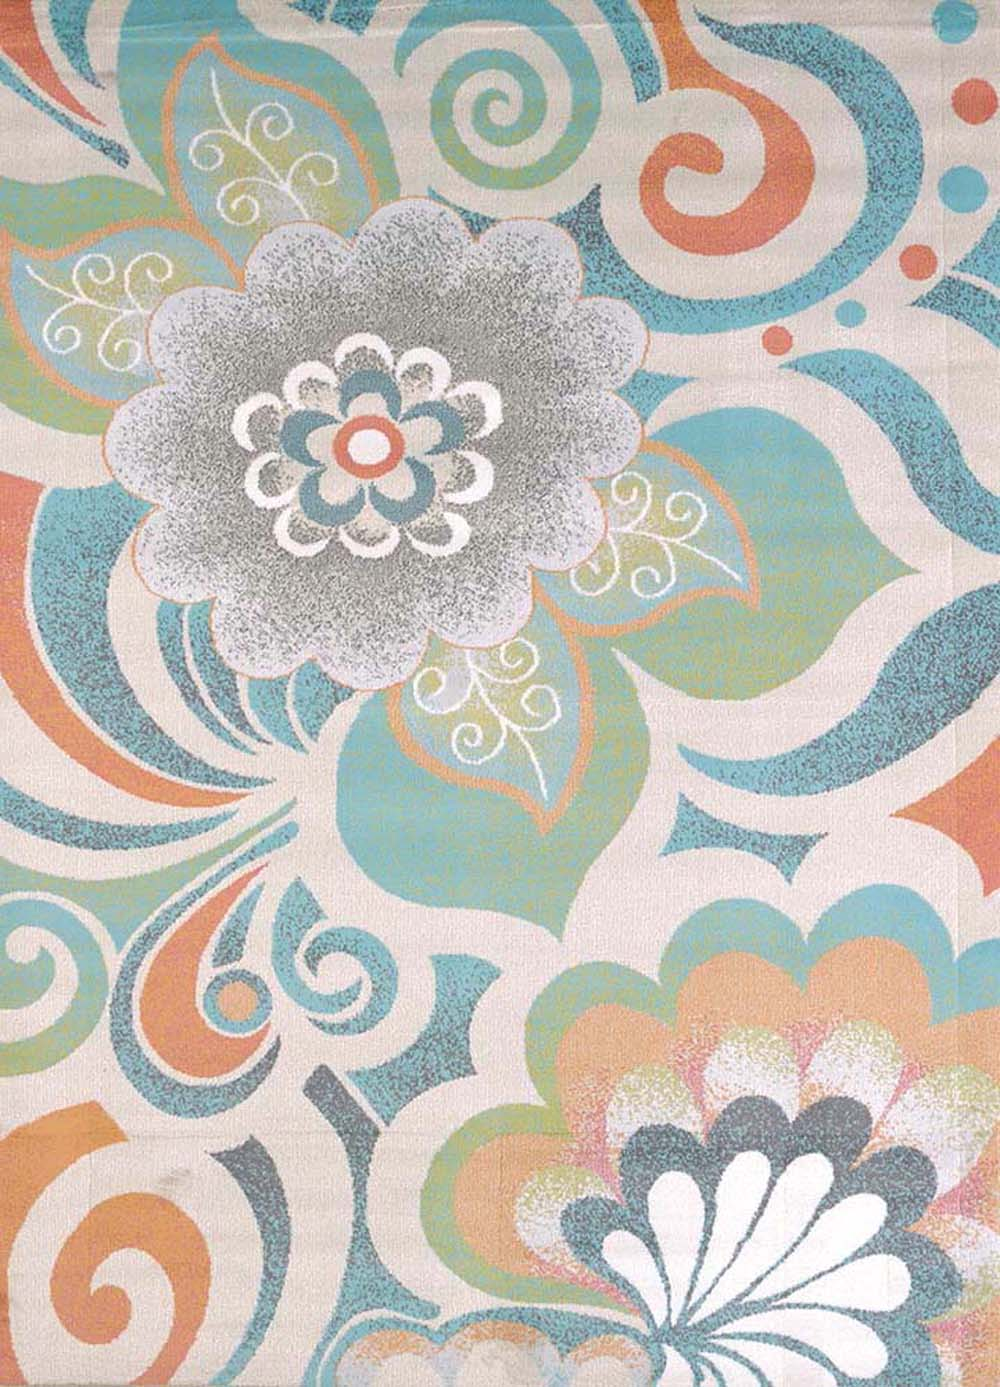 United Weavers Urban Galleries Area Rugs   590 20889 Transitional Casual  Tropical Swirls Petals Leaves